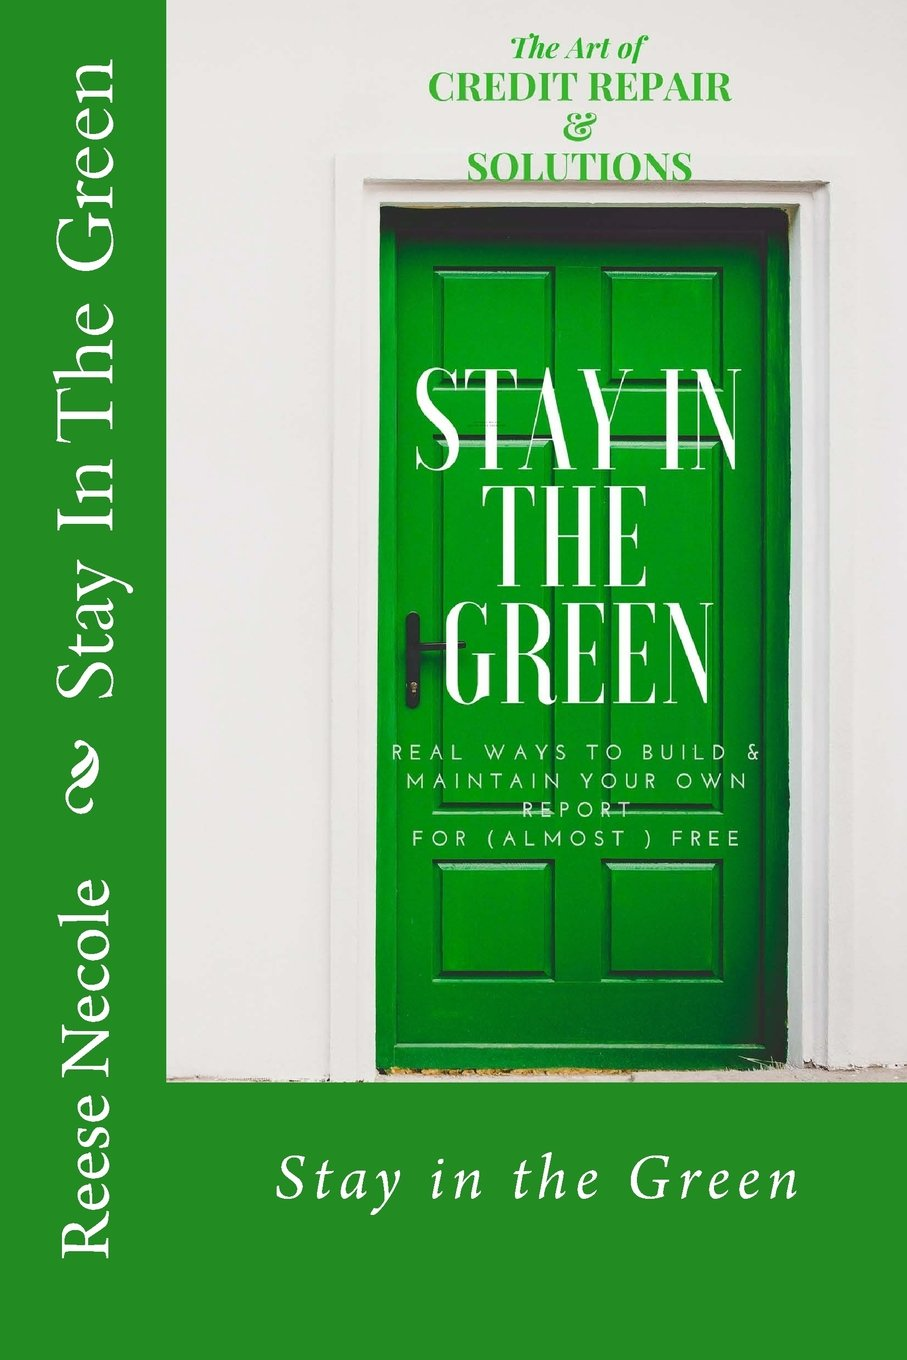 Read Online THE ART OF CREDIT REPAIR &SOLUTIONS: Stay in the Green pdf